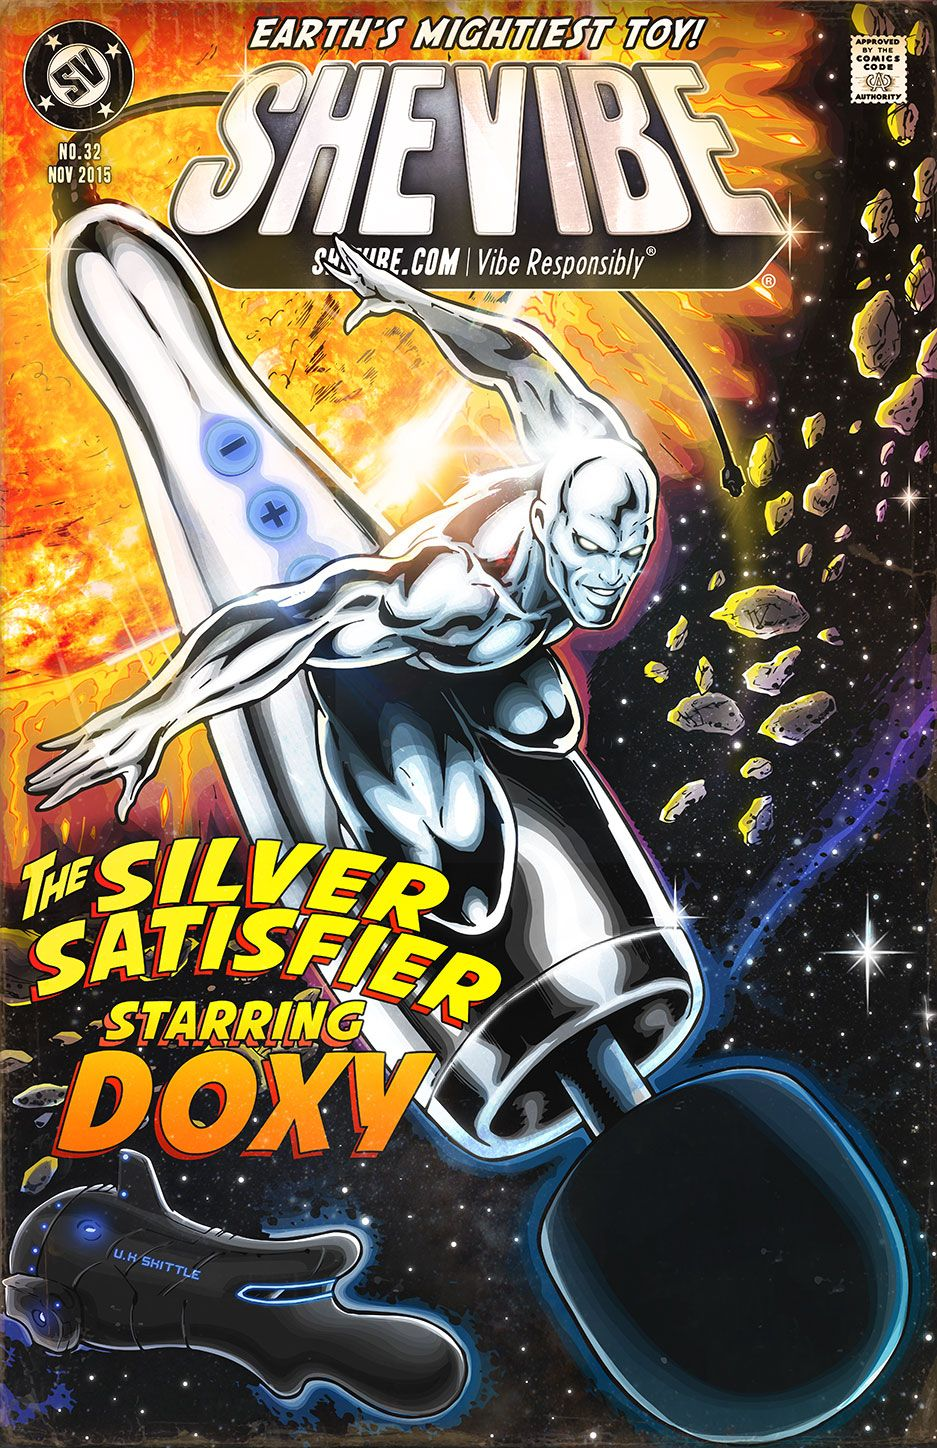 This month SheVibe is featuring the DOXY - the world's most powerful plug-in wand massager.   Designed, engineered and assembled in England, the DOXY is the UK's long awaited answer to the Hitachi Magic Wand.  The DOXY truly is the Silver Satisfier - Earth's Mightiest Toy!